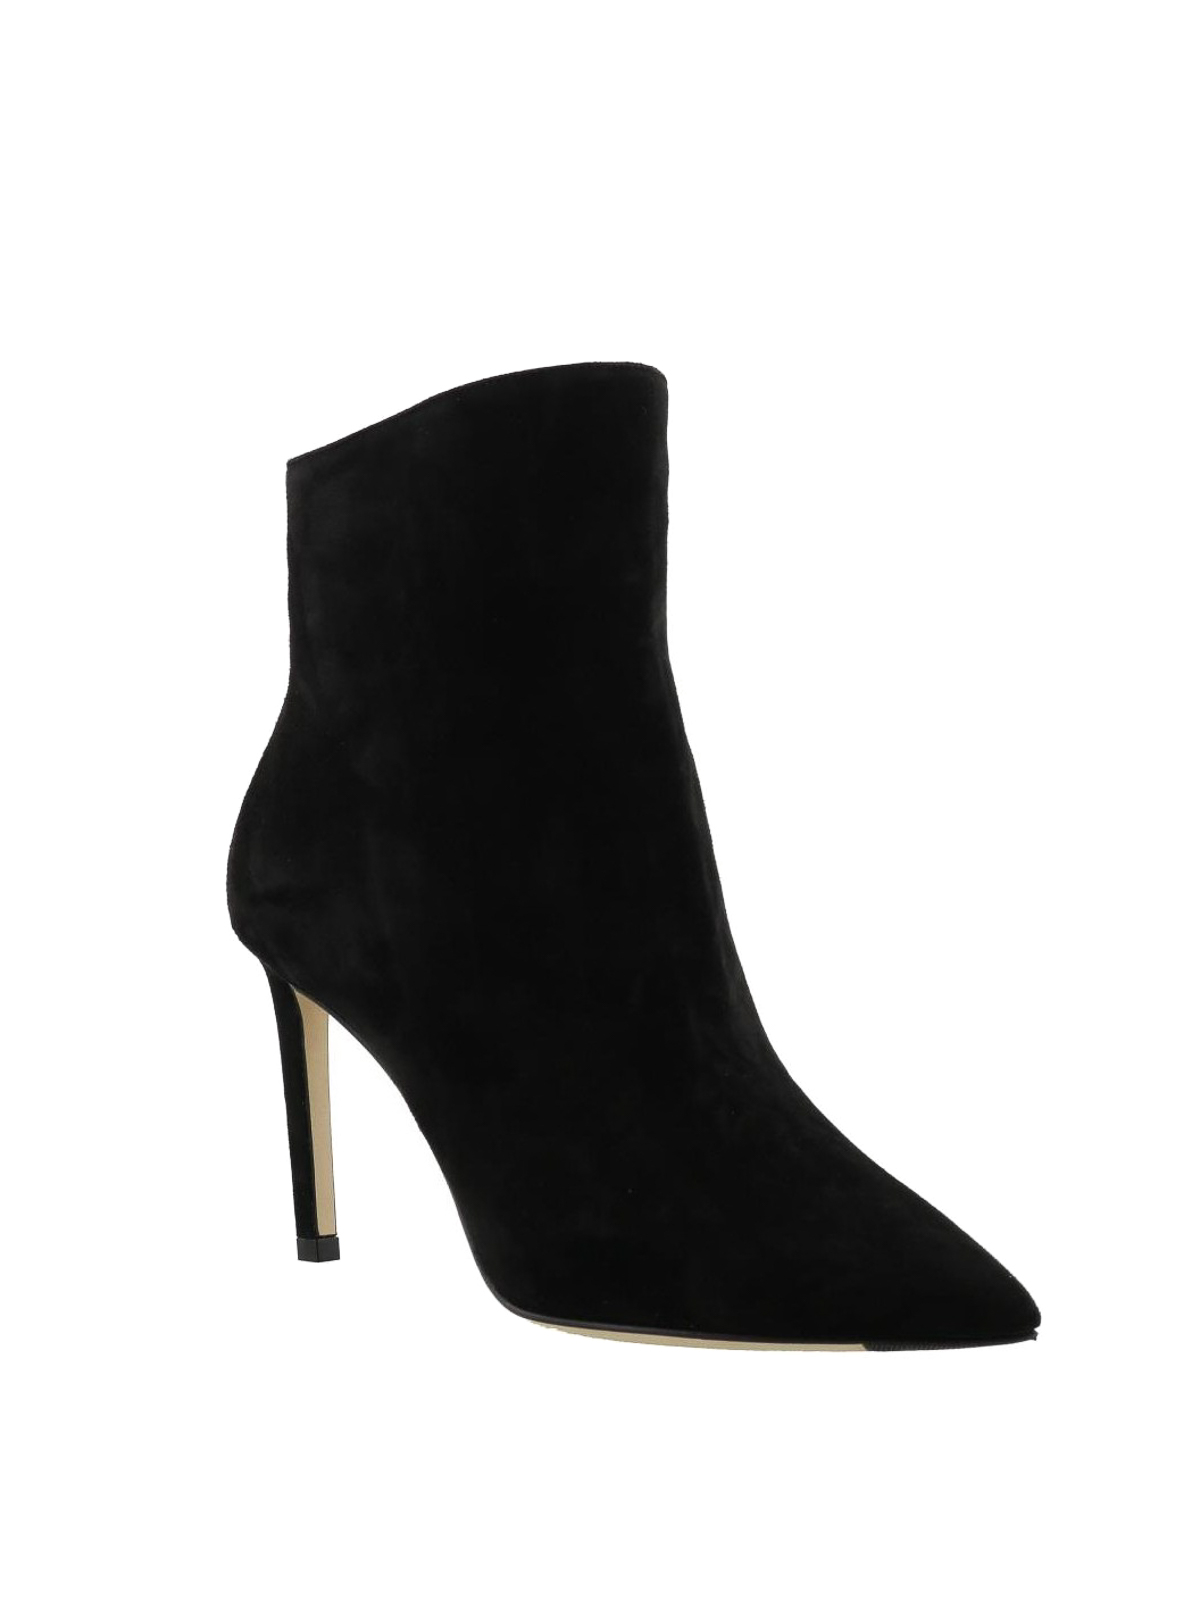 suede heeled booties - ankle boots